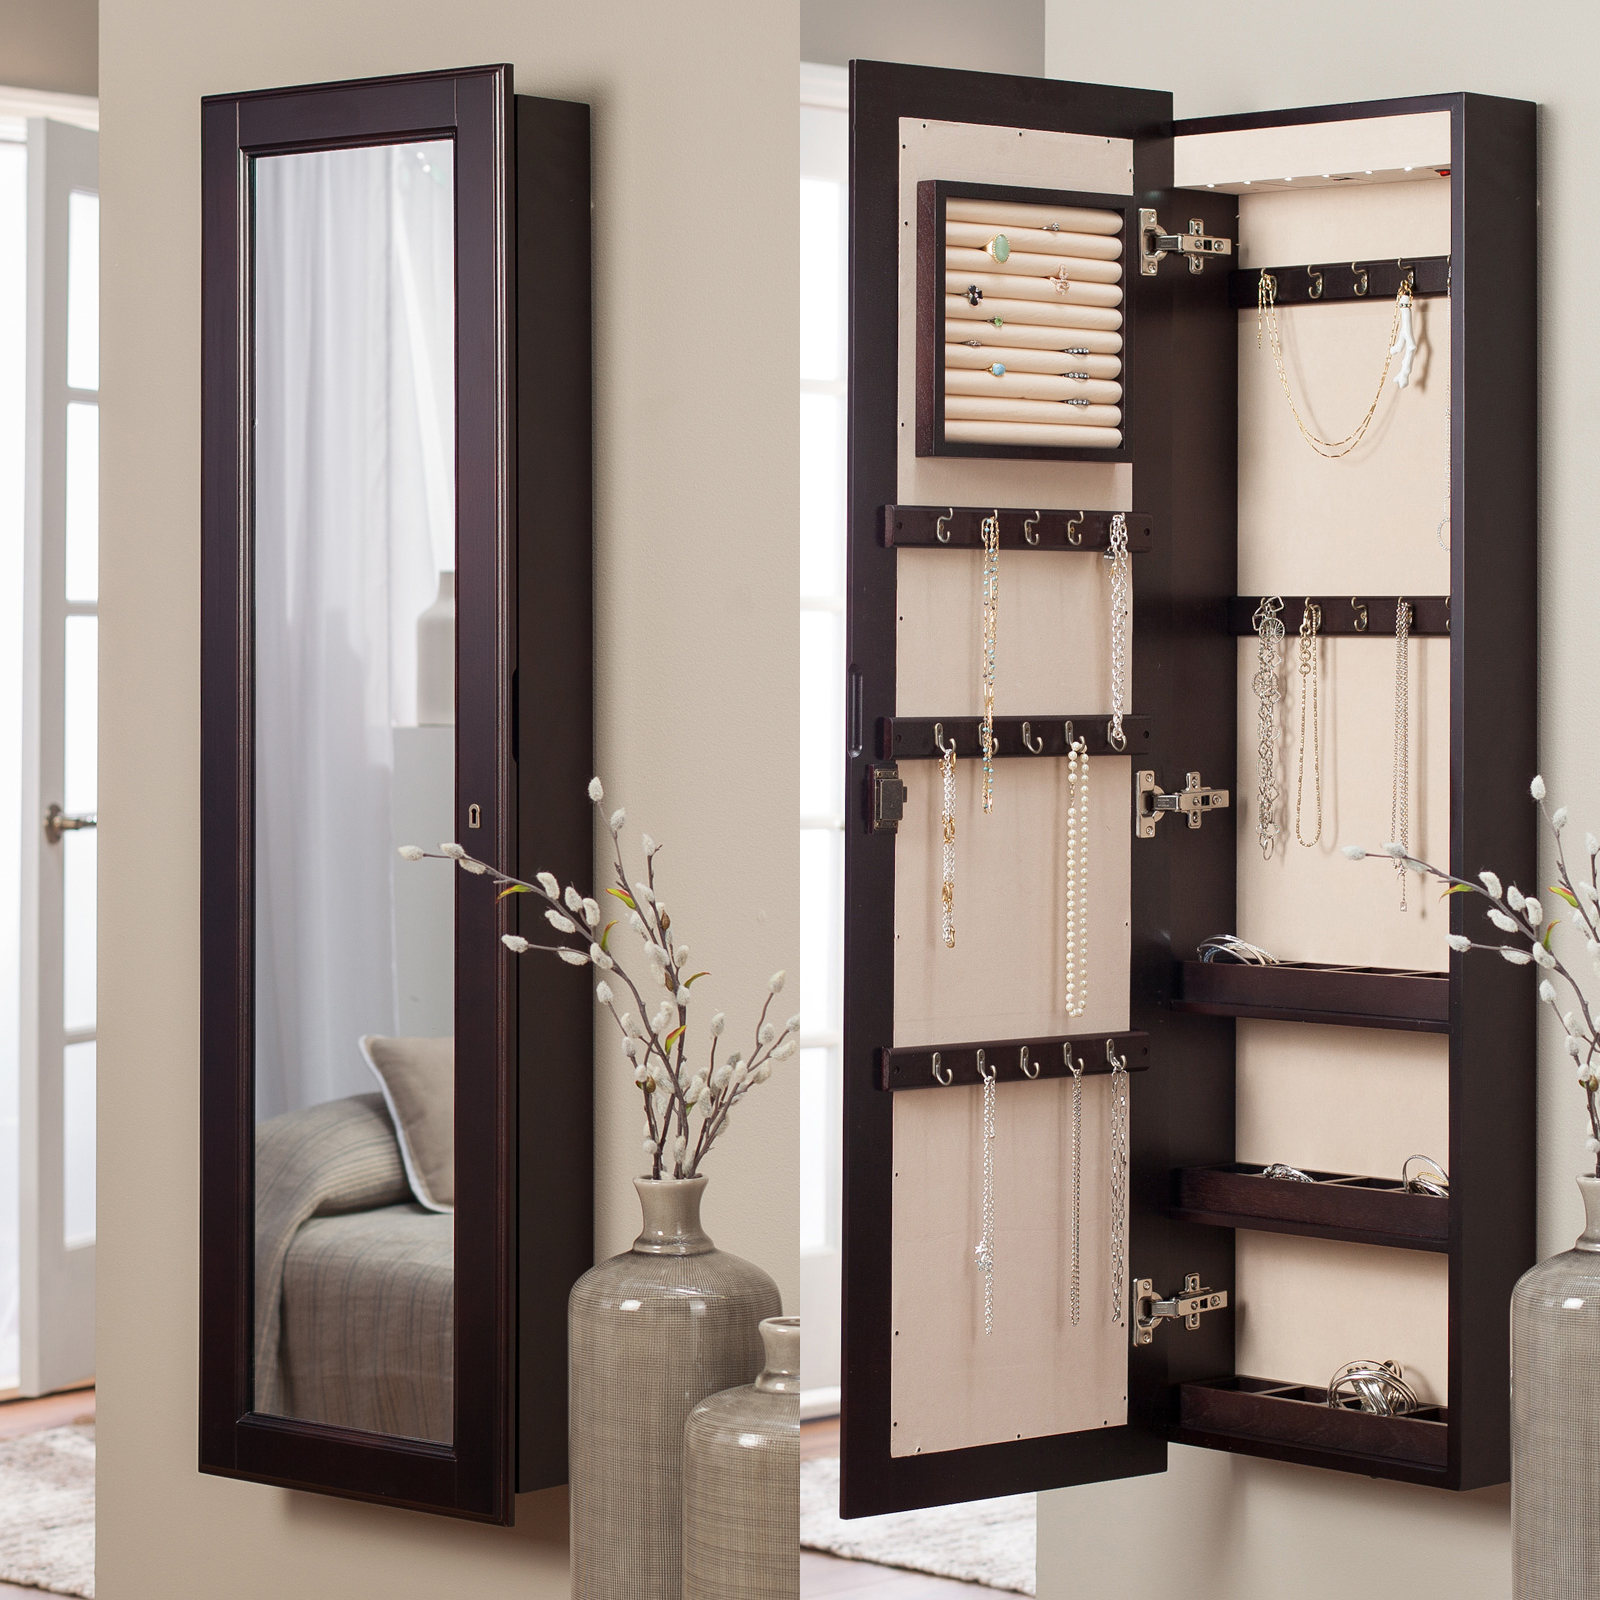 & Belham Living Swivel Cheval Mirror Jewelry Armoire | Hayneedle Pezcame.Com